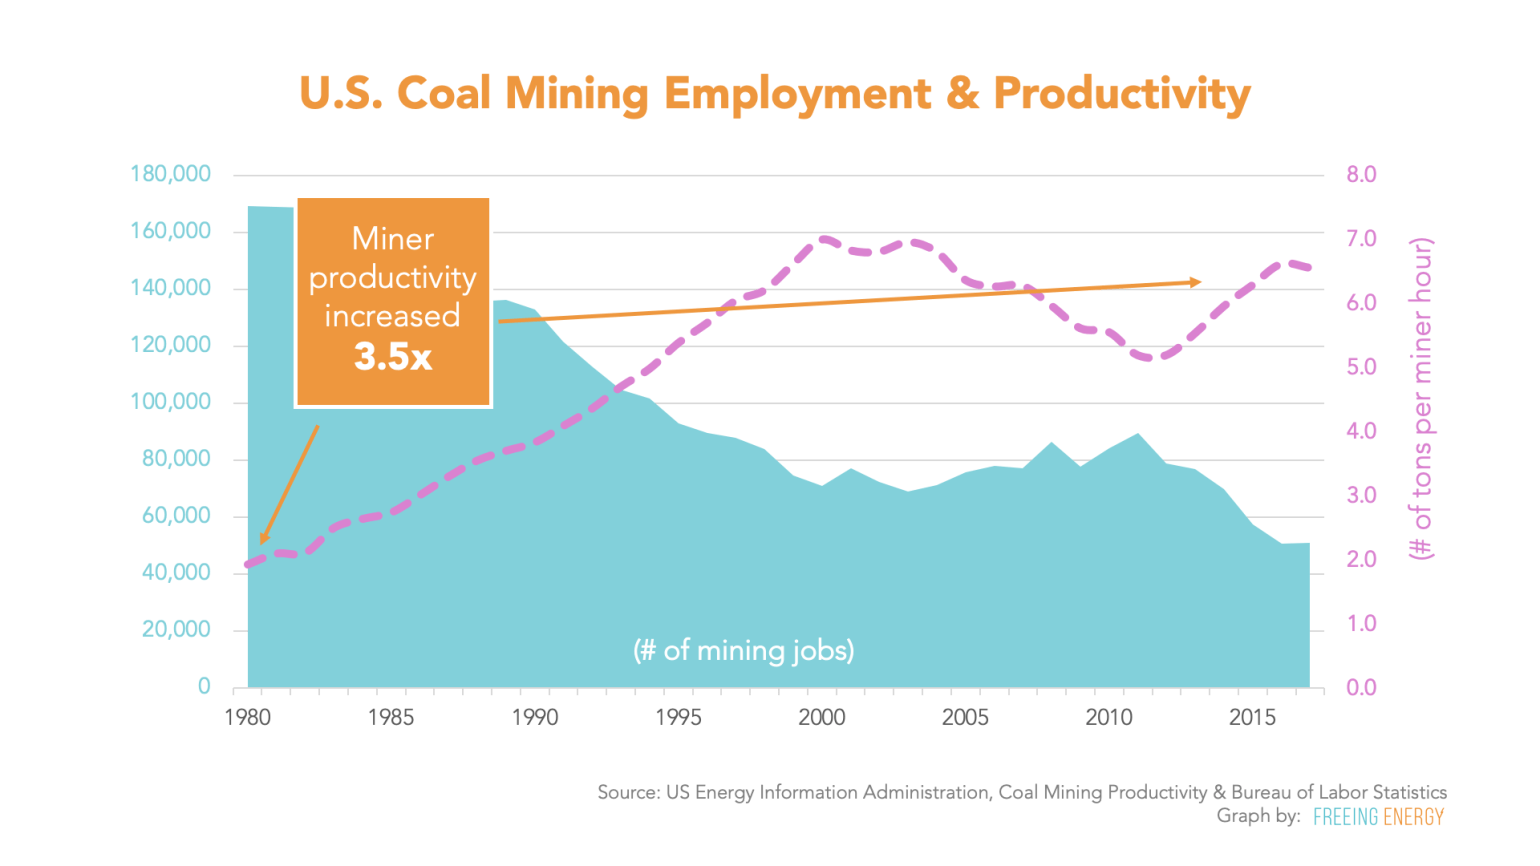 The rise in mining productivity has resulted in a huge drop in coal mining jobs